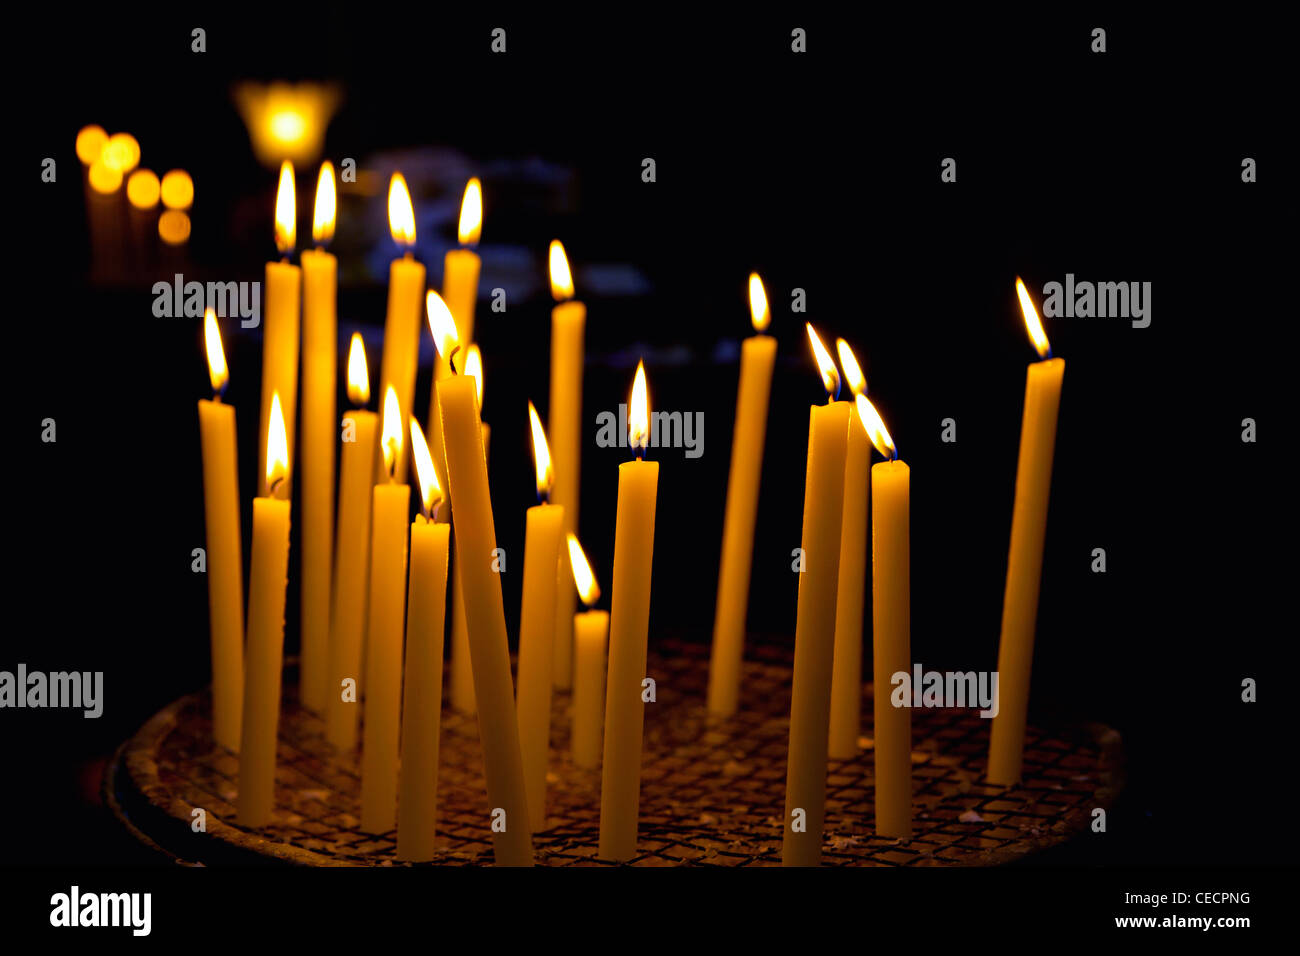 Church candles - Stock Image